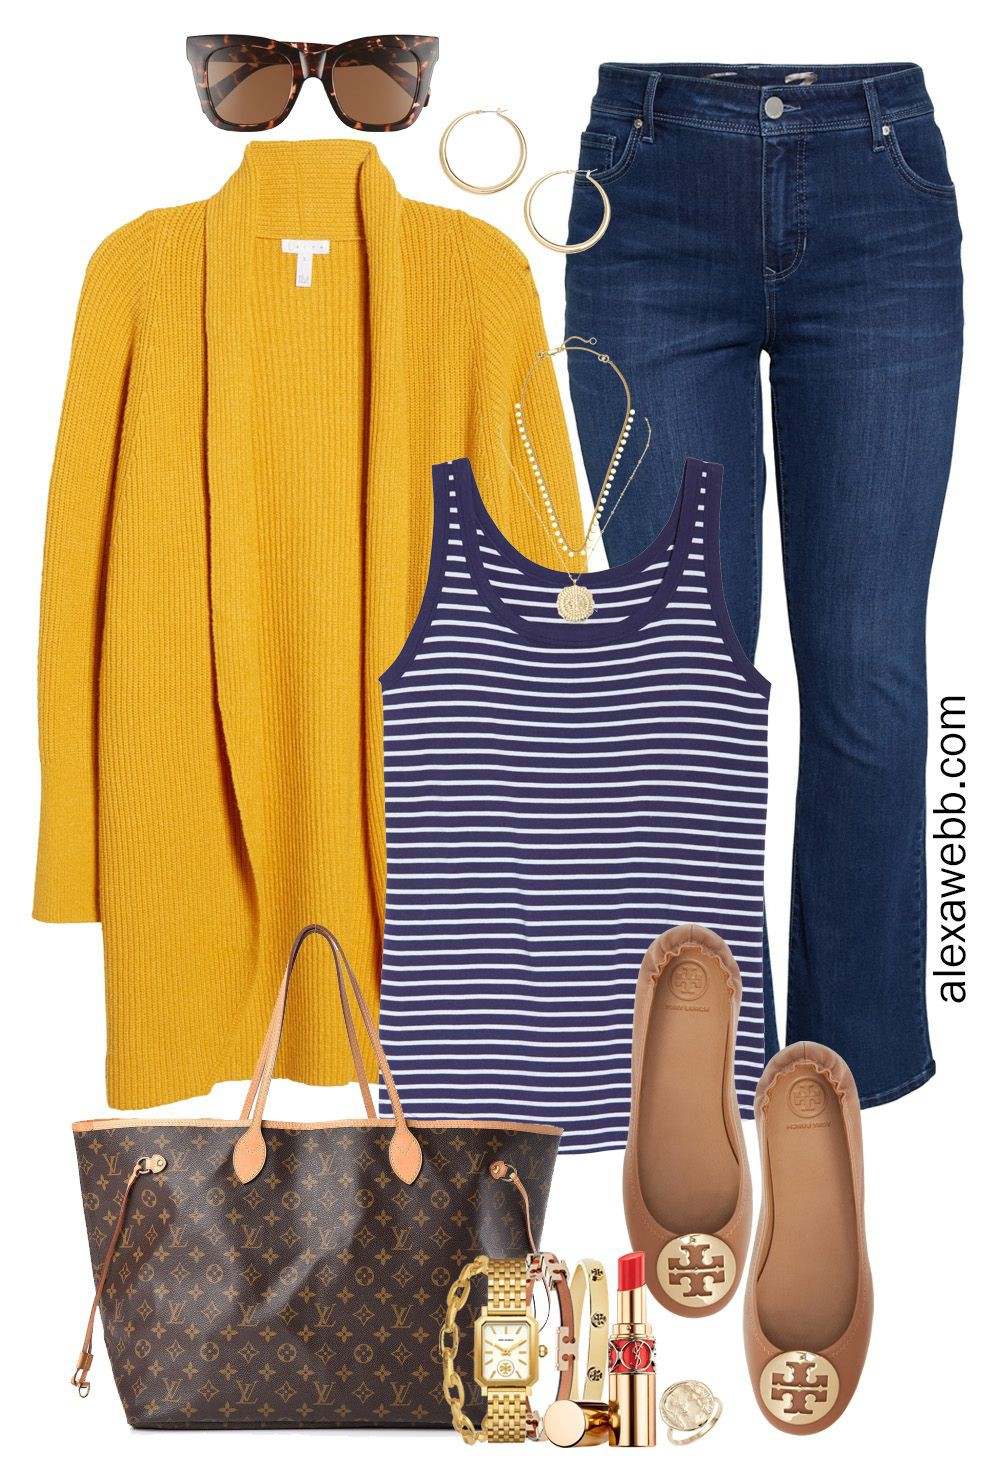 Electric blue and yellow classy outfit with trousers, blazer, denim